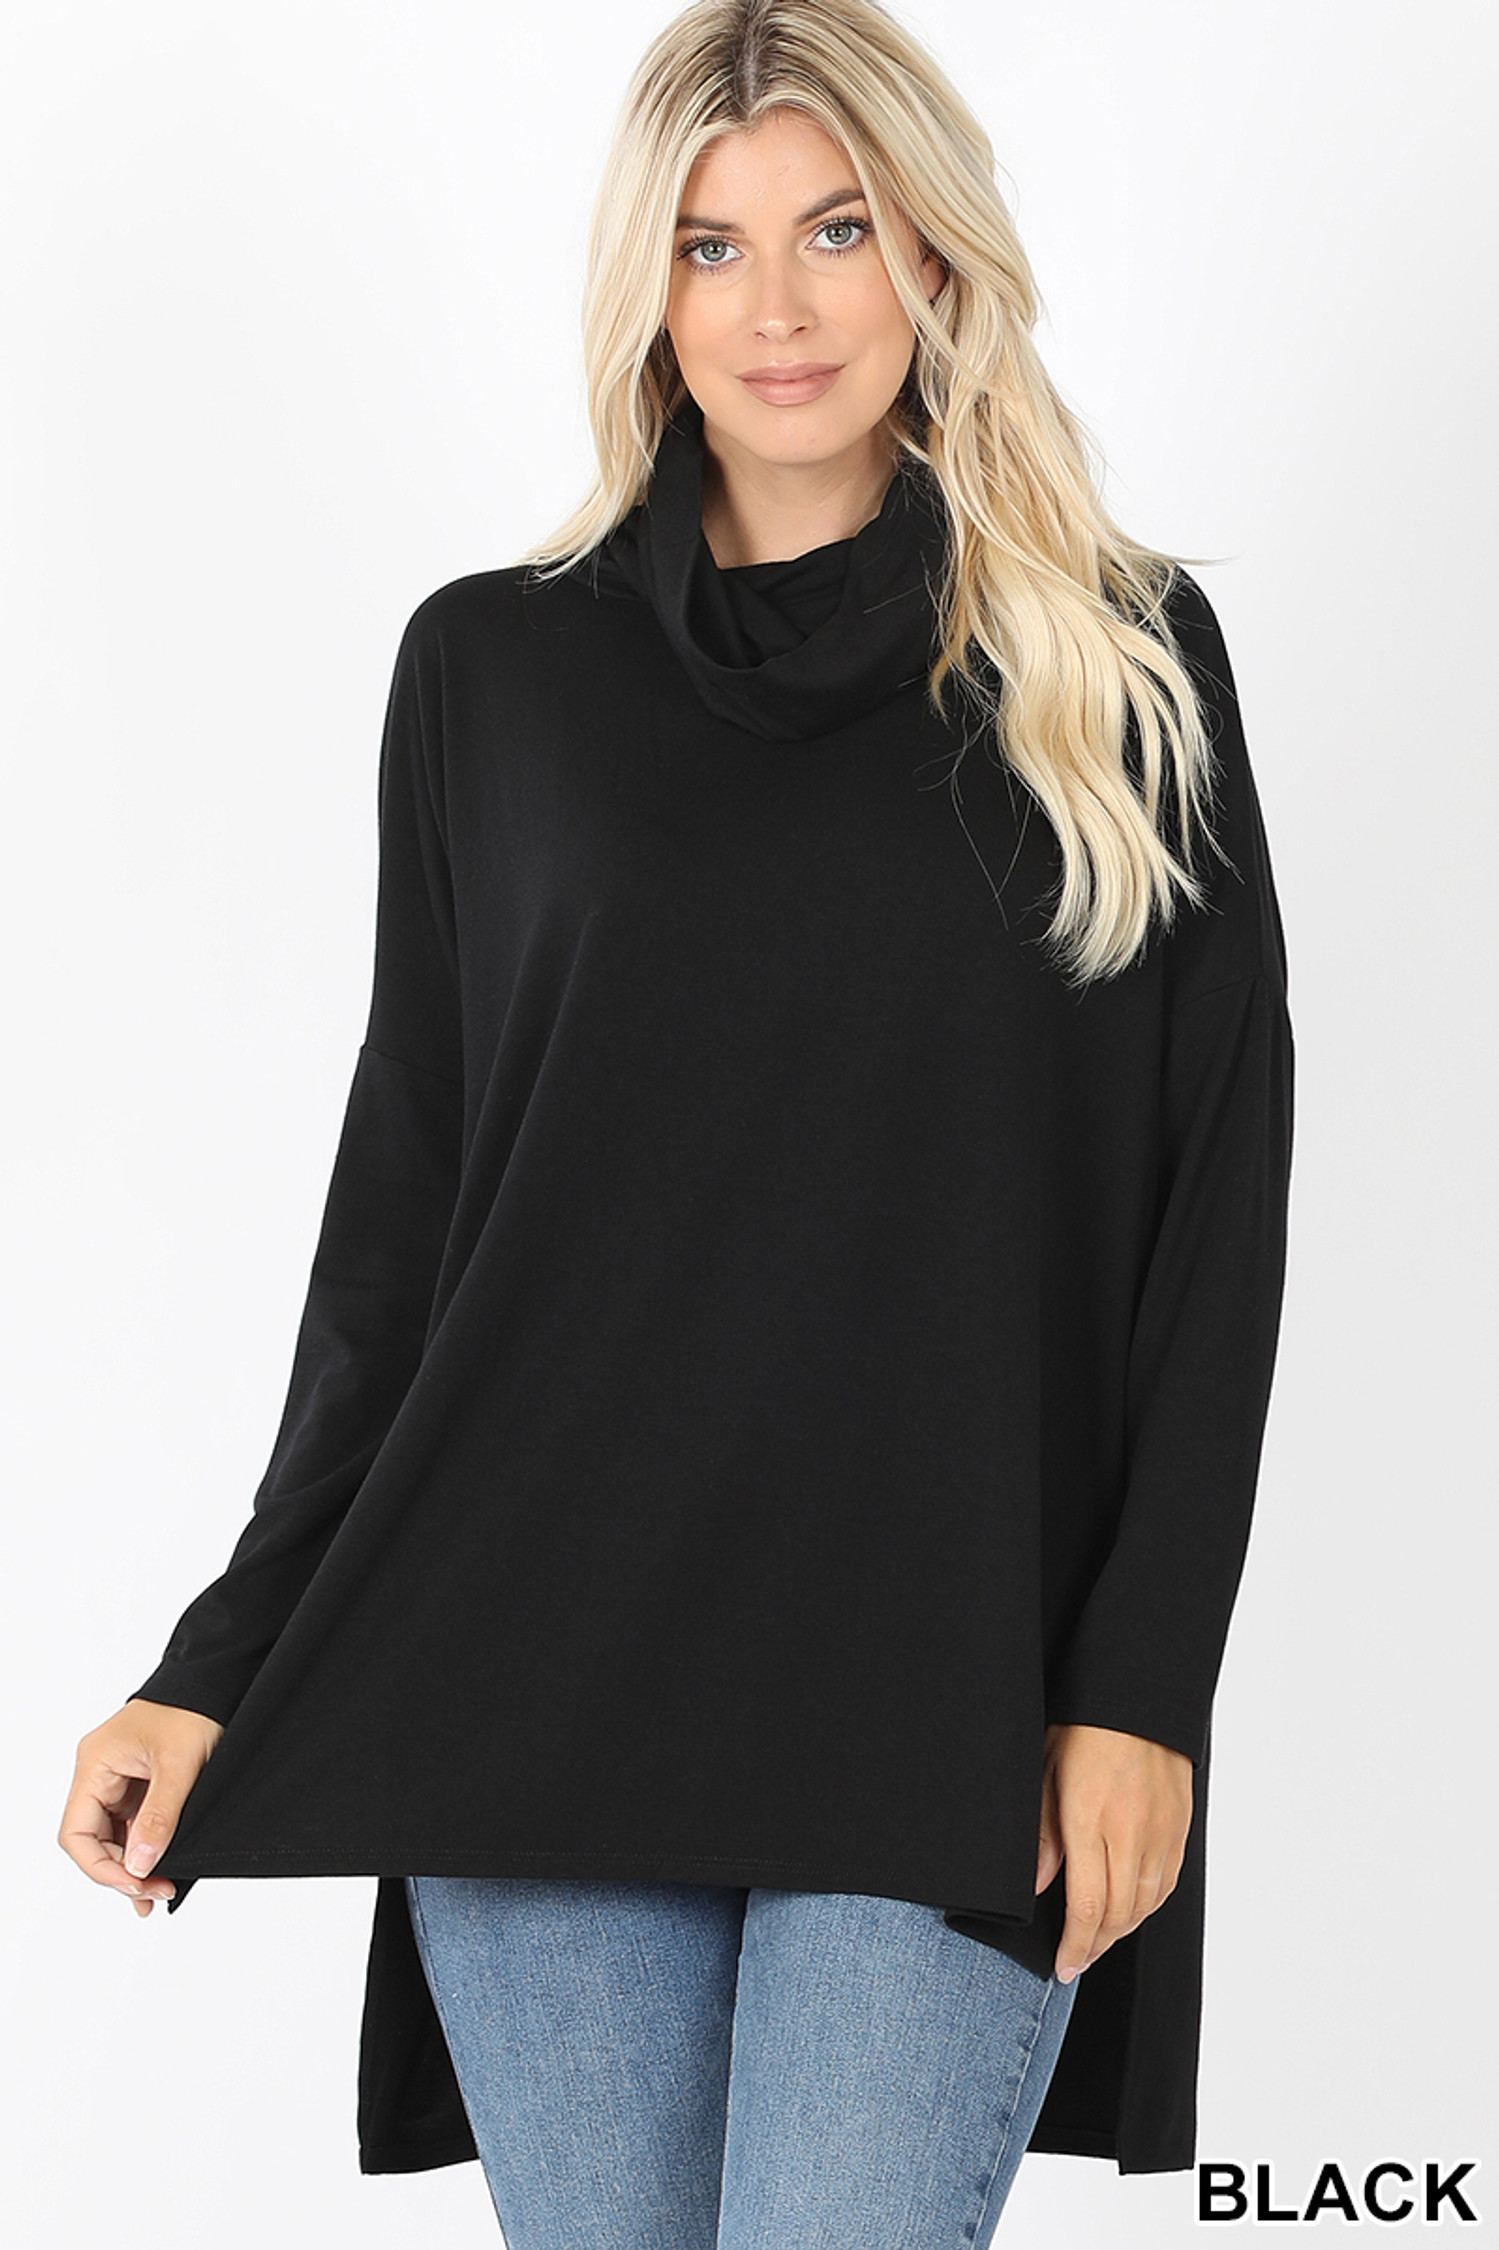 Front image of Black Cowl Neck Hi-Low Long Sleeve Plus Size Top